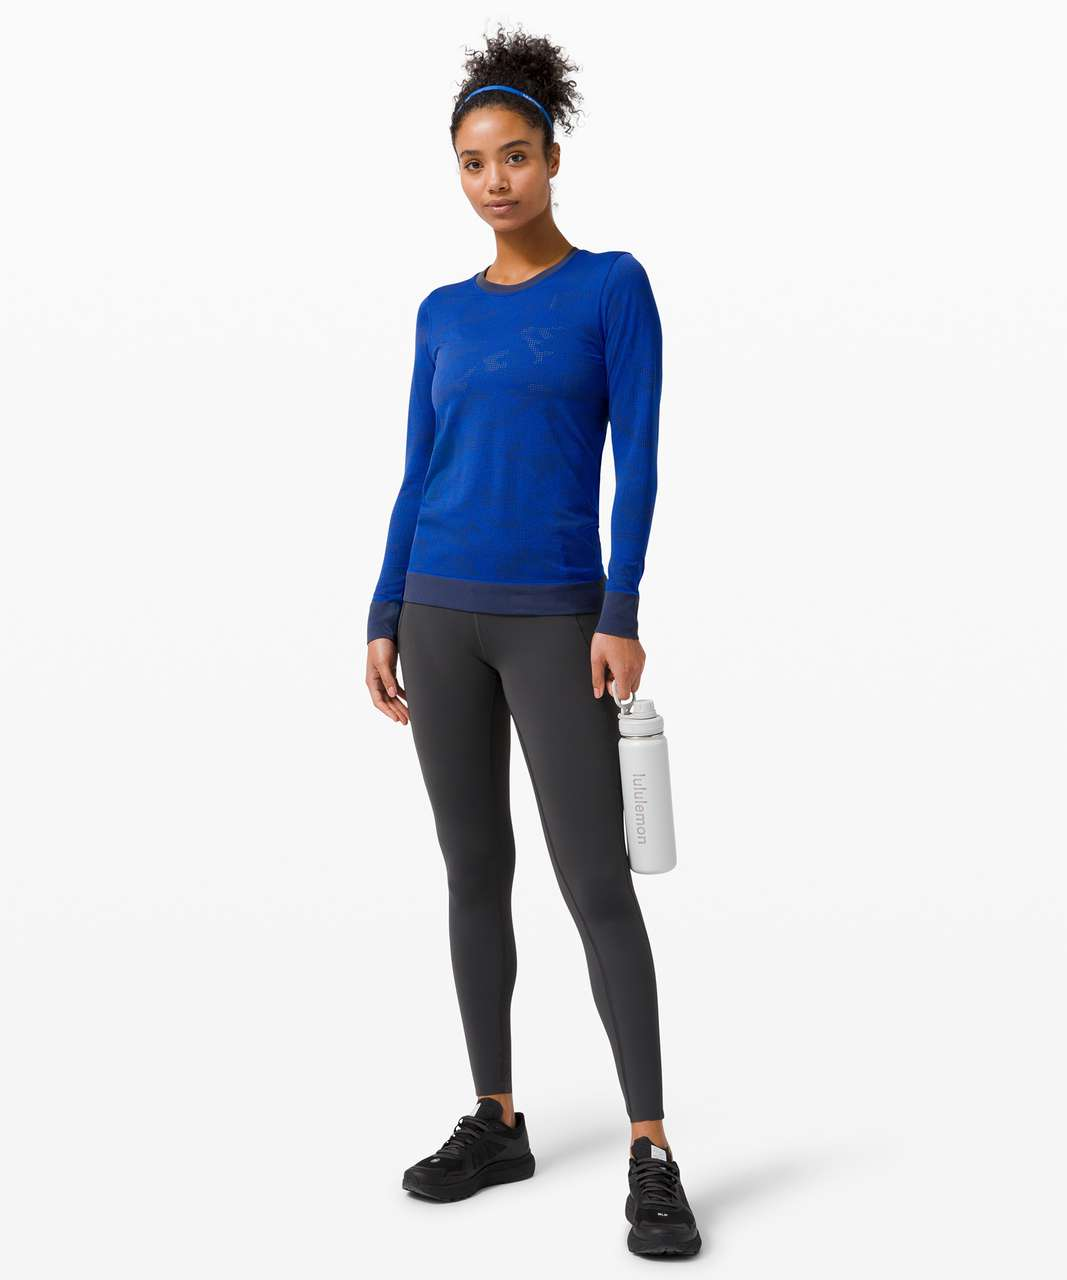 Lululemon Swiftly Breathe Long Sleeve - Vented Camo Graphite Grey / Cerulean Blue